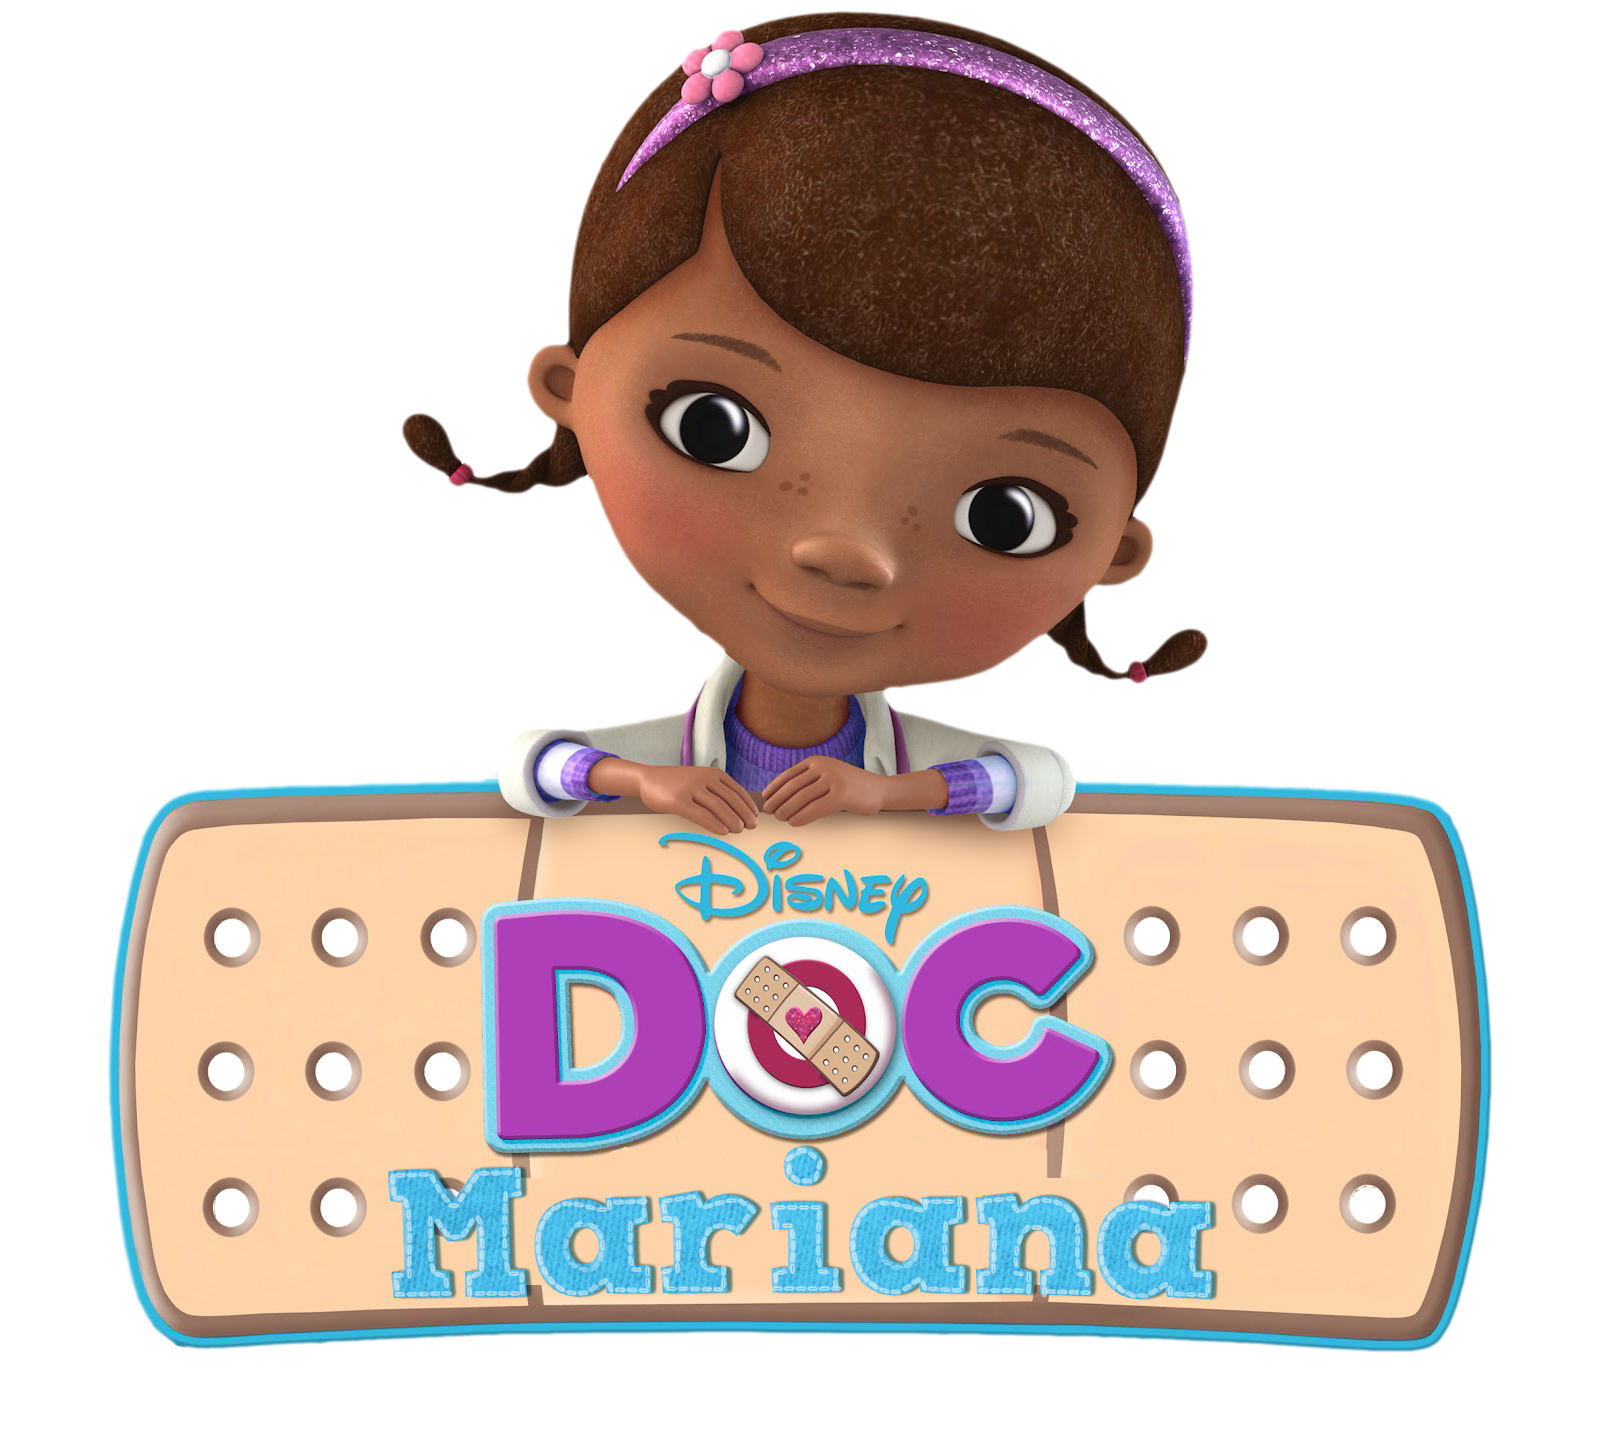 Doc mcstuffins face clipart royalty free LOGO DOCTORA JUGUETES | Angie | Pinterest royalty free